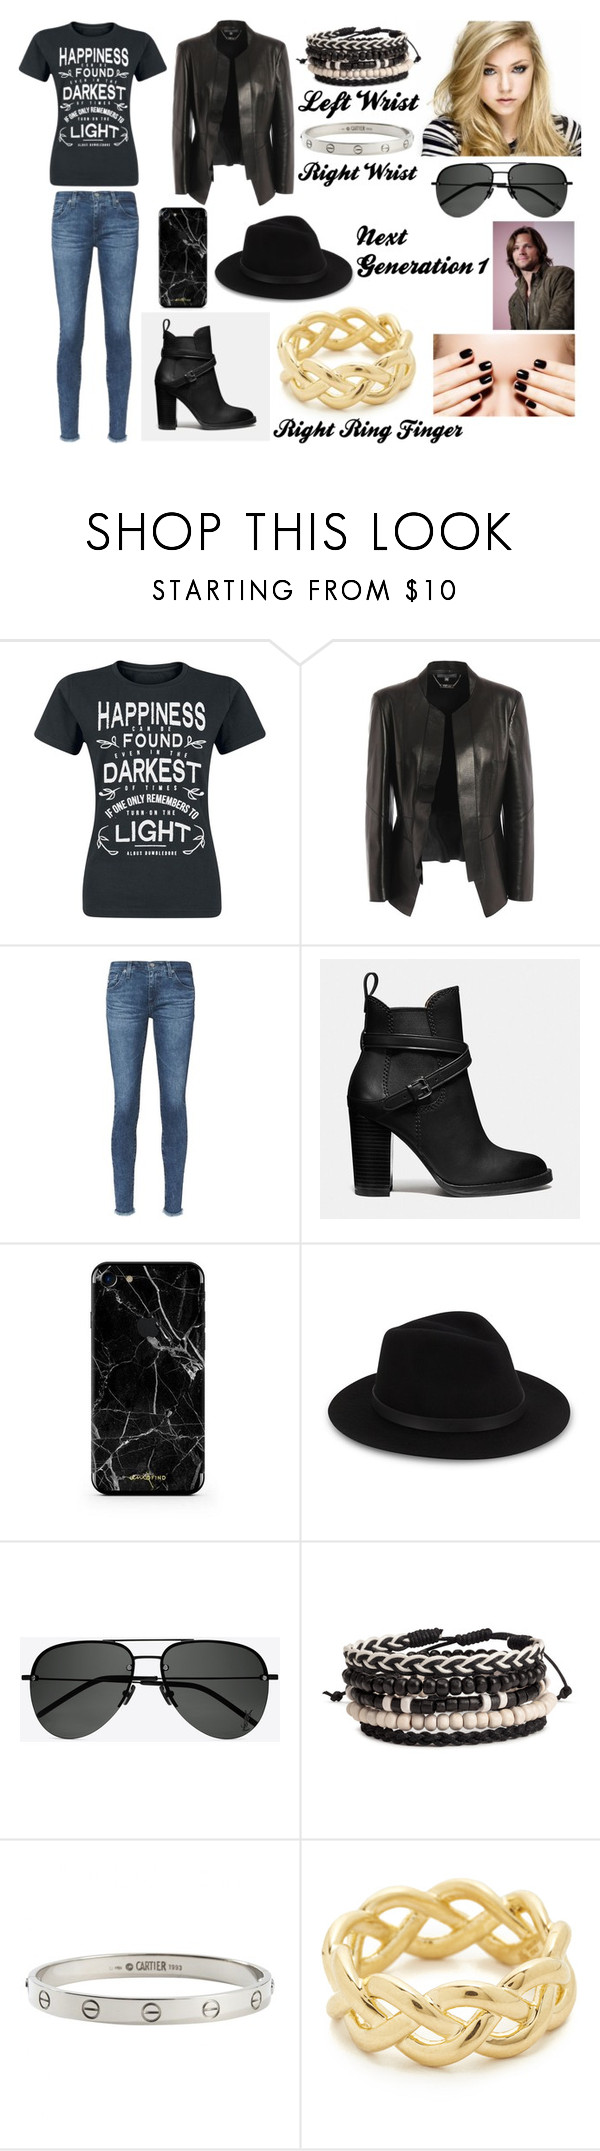 """Next Generation 1"" by giuly666 on Polyvore featuring moda, Alexander McQueen, AG Adriano Goldschmied, Coach, Saks Fifth Avenue, Yves Saint Laurent, Cartier, Soave Oro e jared"